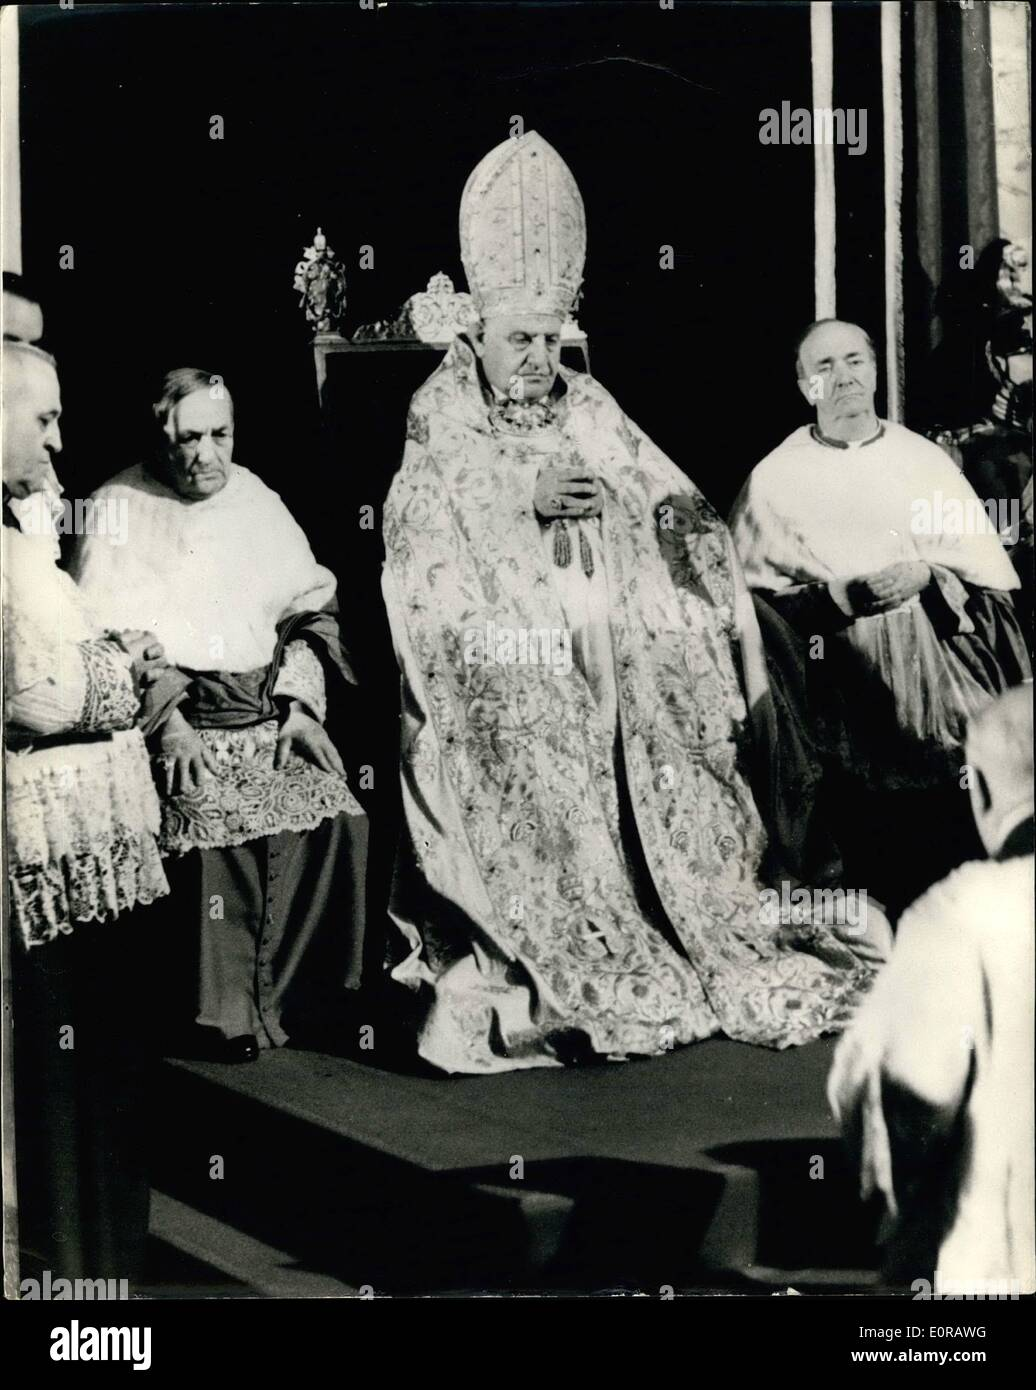 Nov. 11, 1958 - The Pope Takes Possession Of St. John In Lateran Basilica: H.H. The Pope left the Vatican City to take possession at St. John in Lateran Basilica. Photo Shows Pope John XXIII flanked by Cardinals - during the ceremonies at St. John Lateran's Basilica. - Stock Image